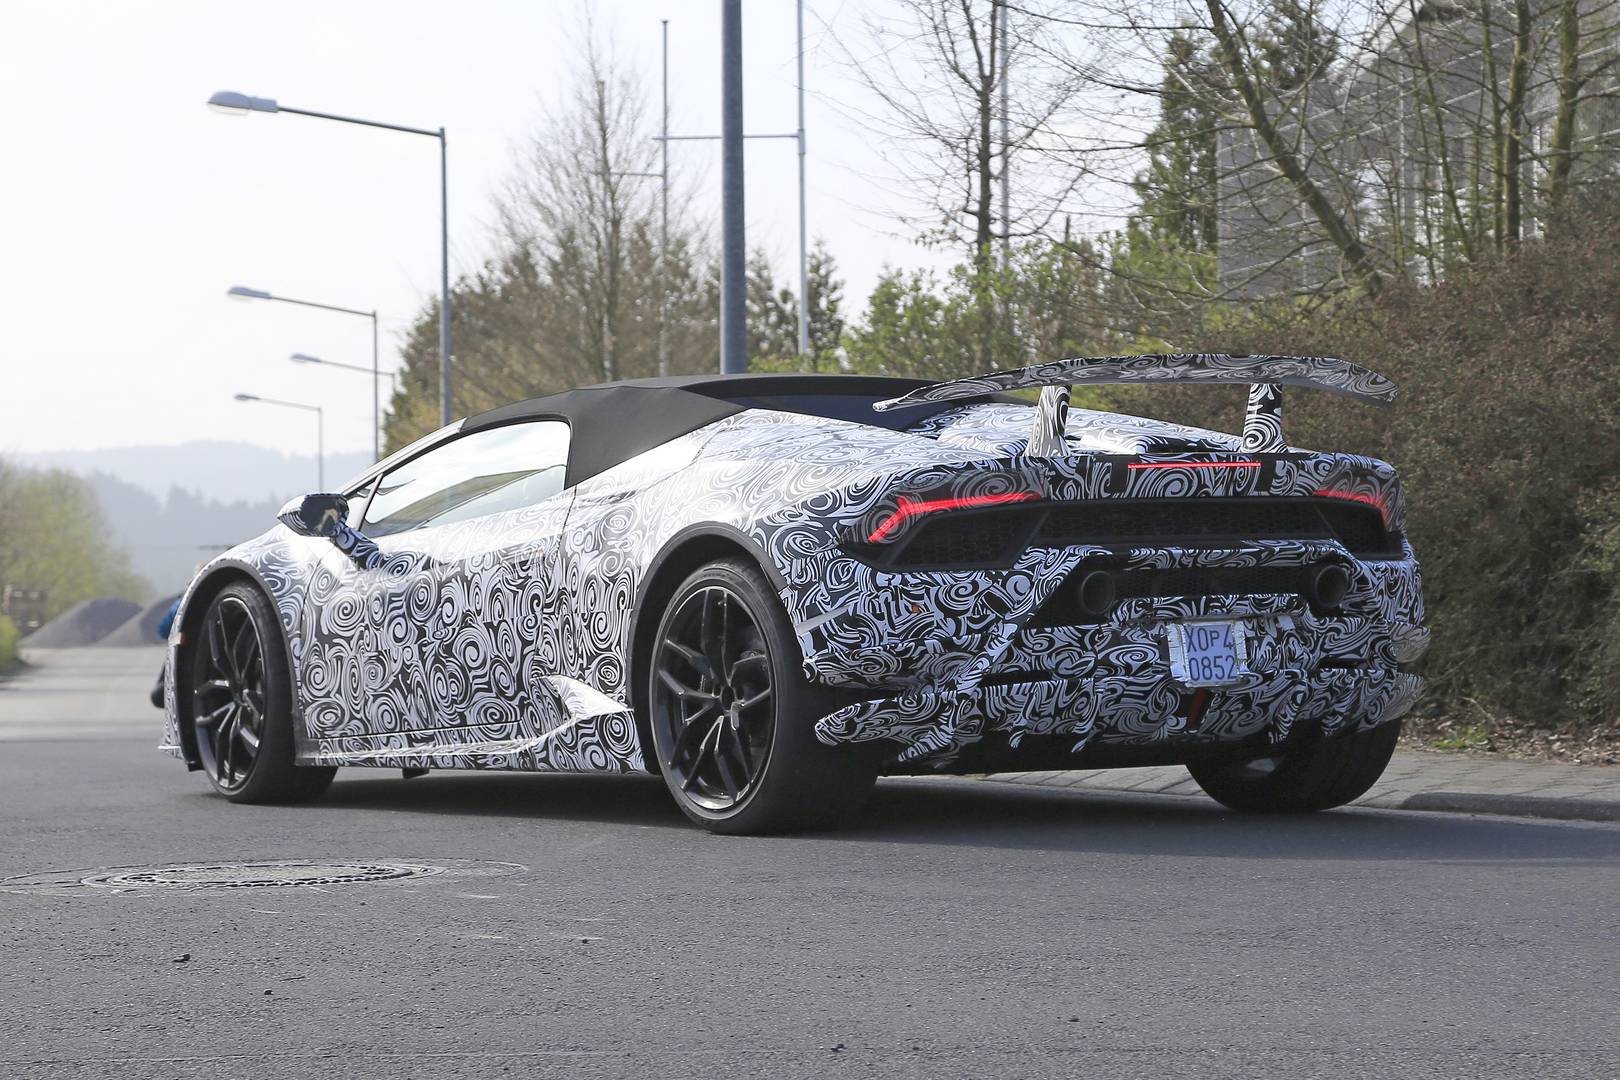 lamborghini huracan performante spyder latest spy shots gtspirit. Black Bedroom Furniture Sets. Home Design Ideas